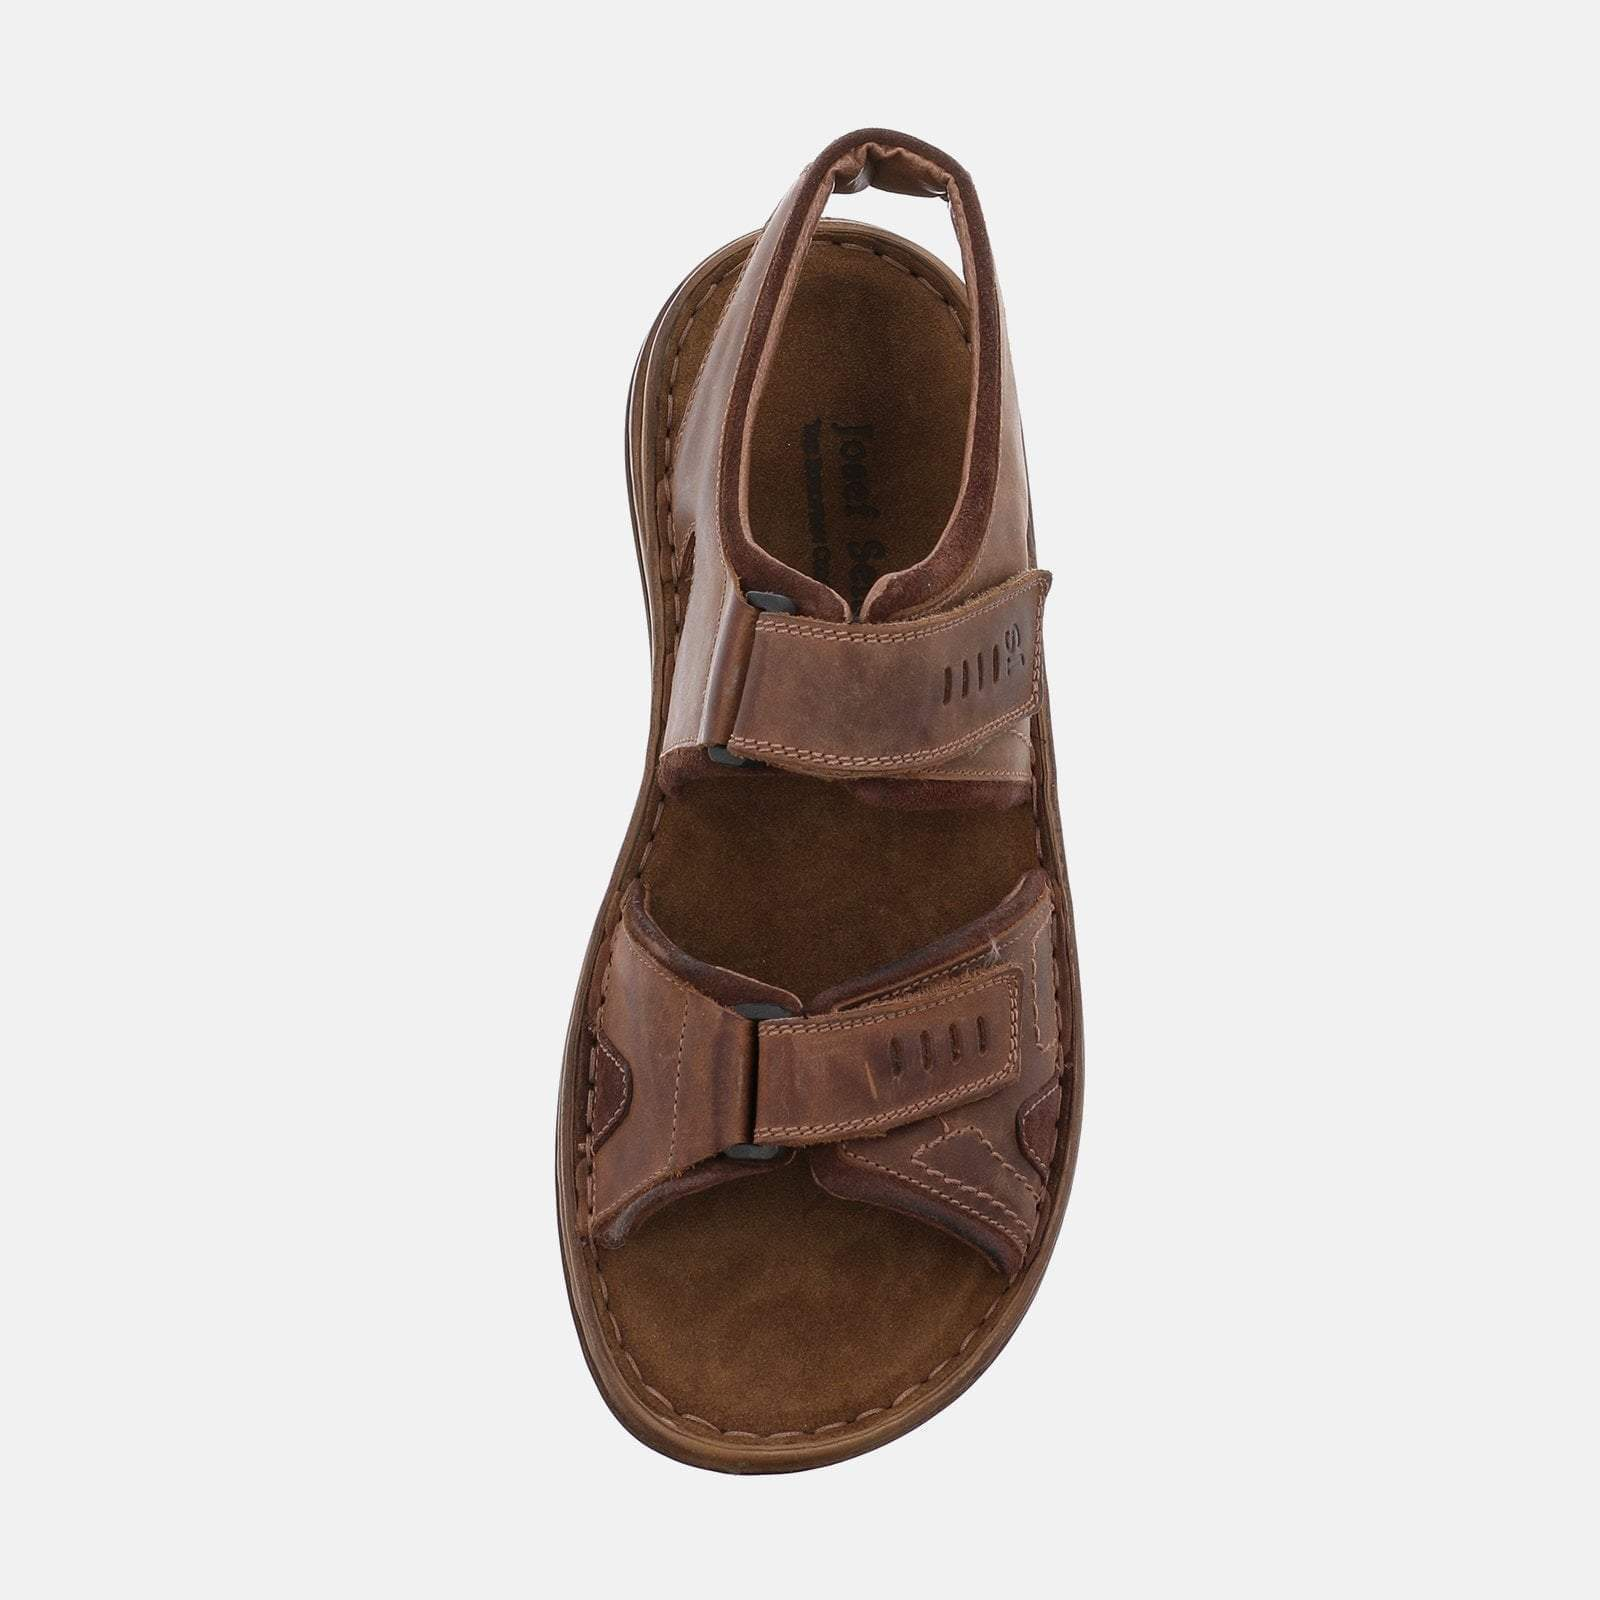 Josef Seibel Footwear Josef Seibel Raul 19 Castagne/Brasil  Brown Tan Leather Velcro Sandal